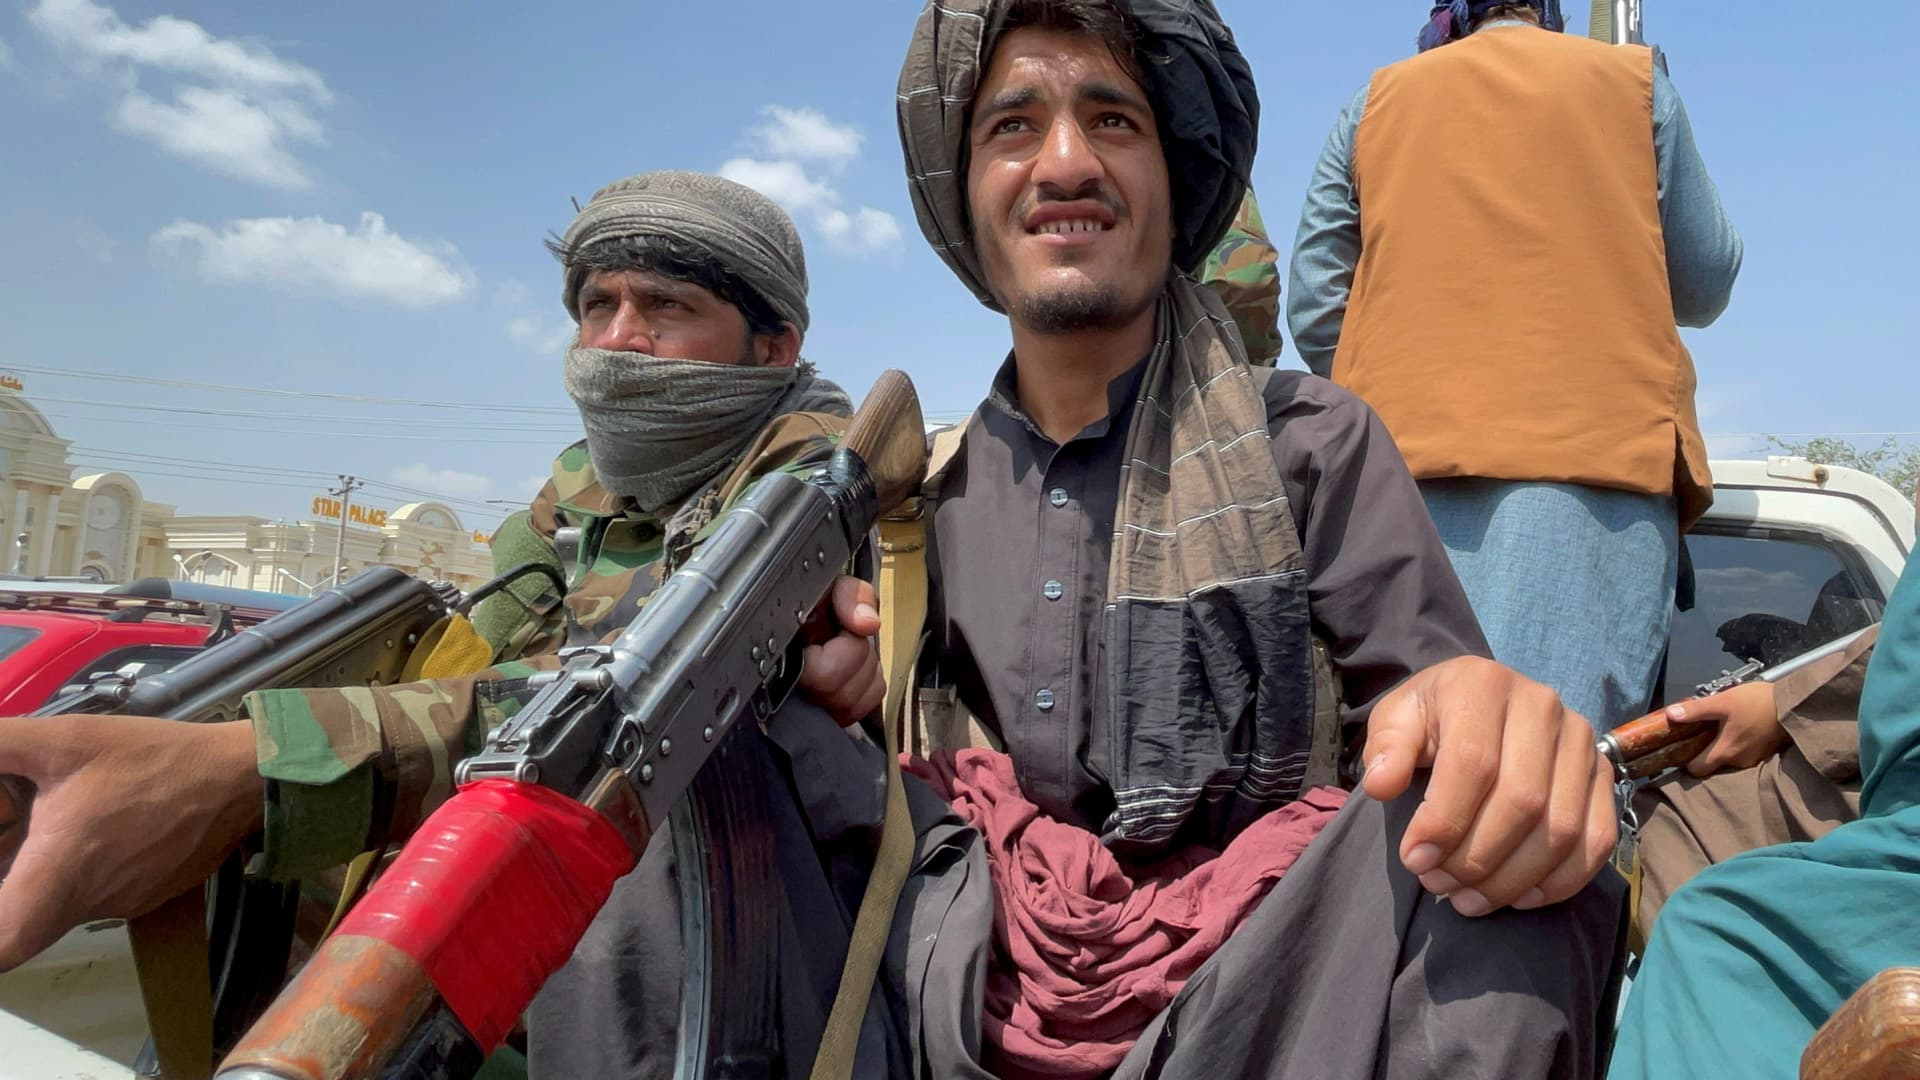 Taliban forces patrol near the entrance gate of Hamid Karzai International Airport, a day after U.S troops withdrawal, in Kabul, Afghanistan August 31, 2021.